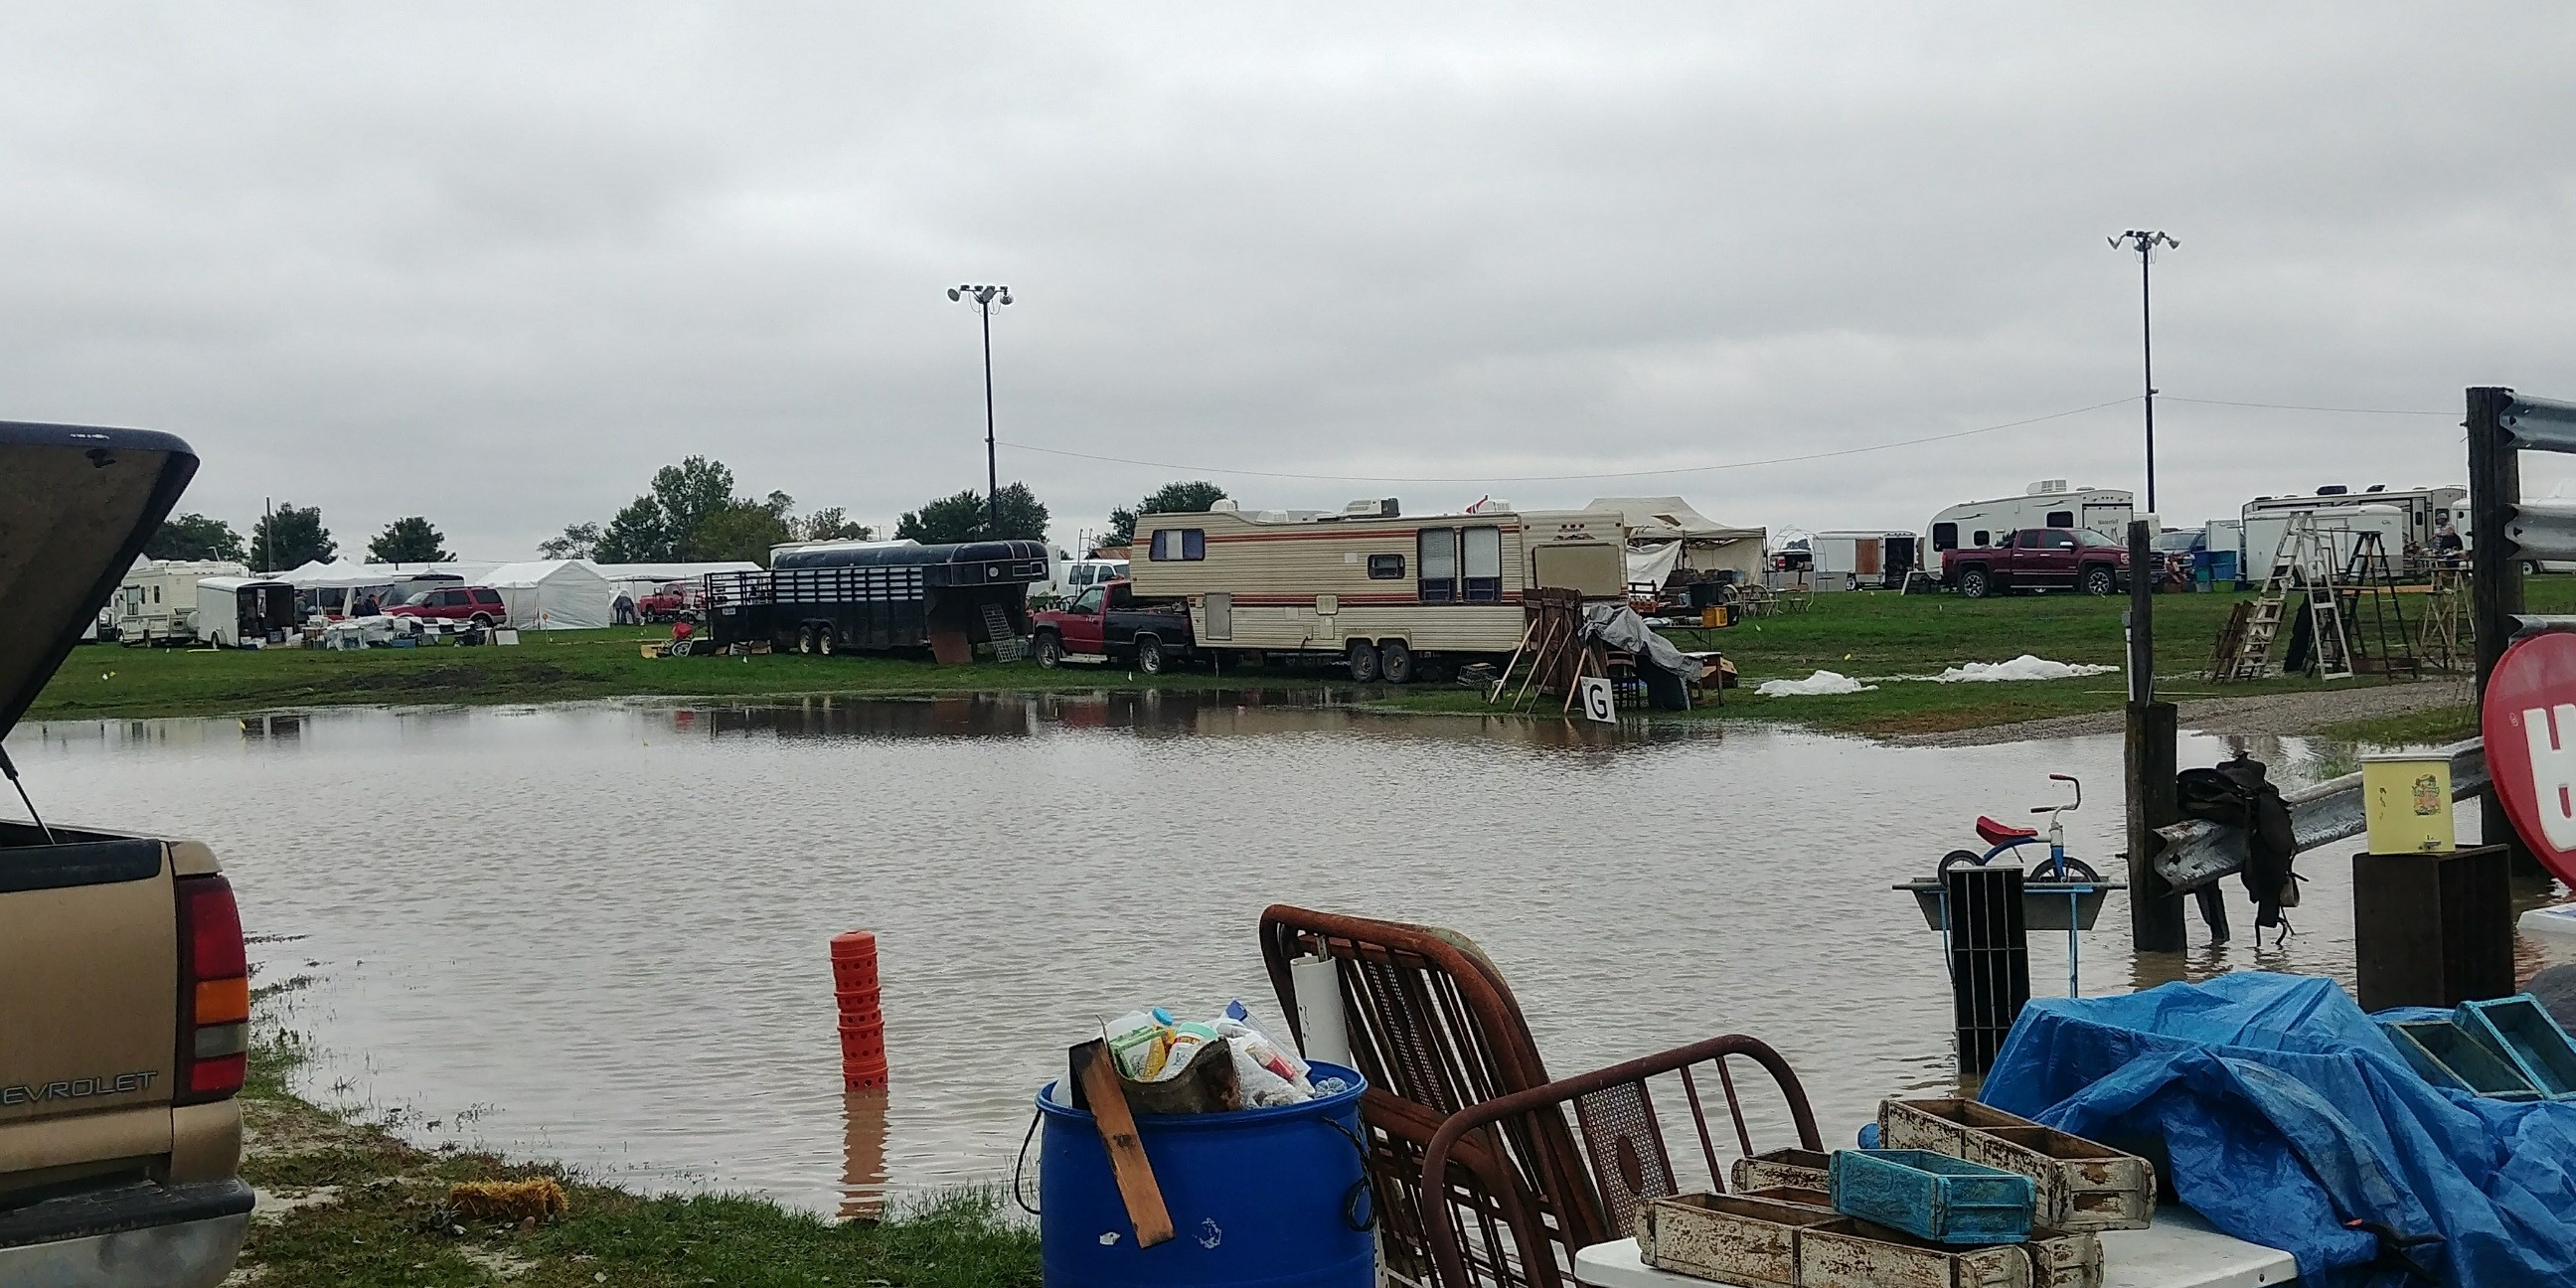 FleaMarketFlood